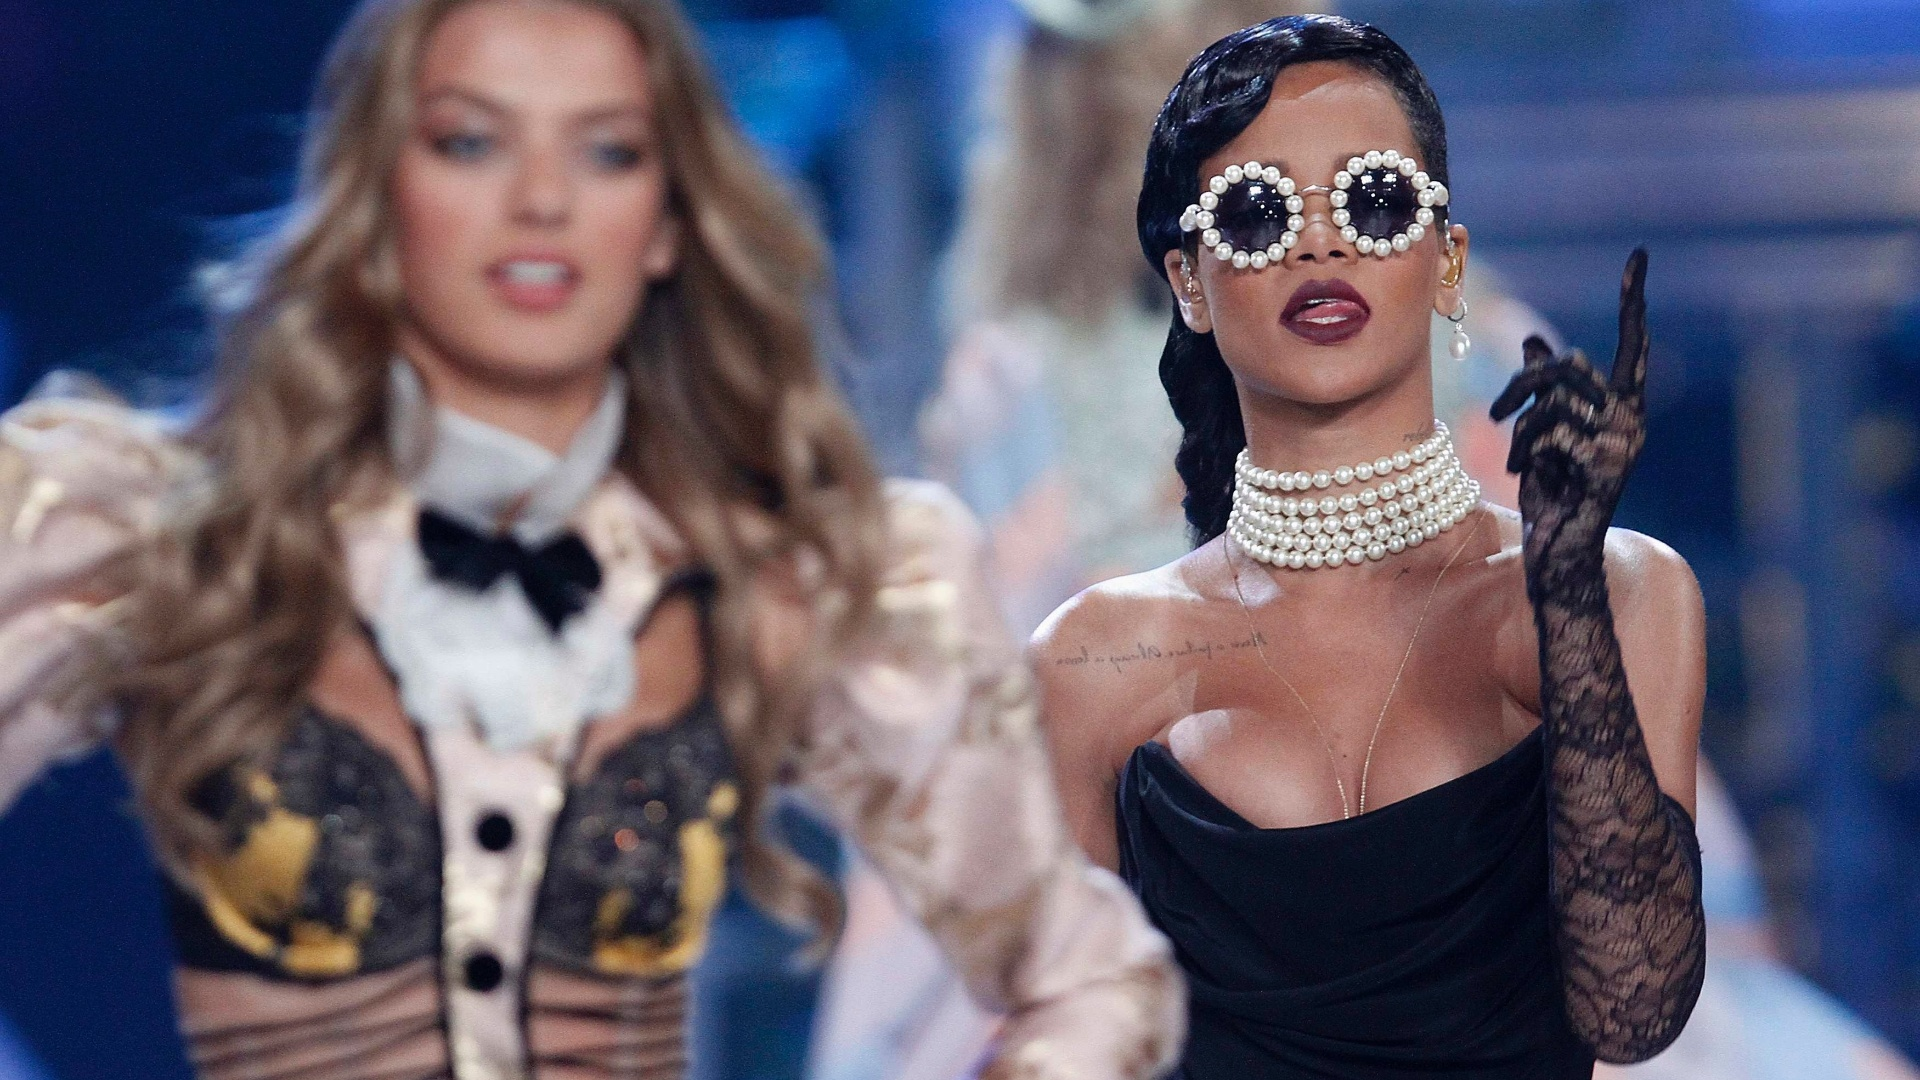 Rihanna se apresenta durante o evento Victoria's Secret Fashion Show em Nova York, nos Estados Unidos. O desfile especial ser transmitido no dia 4 de dezembro na CBS (7/11/12)